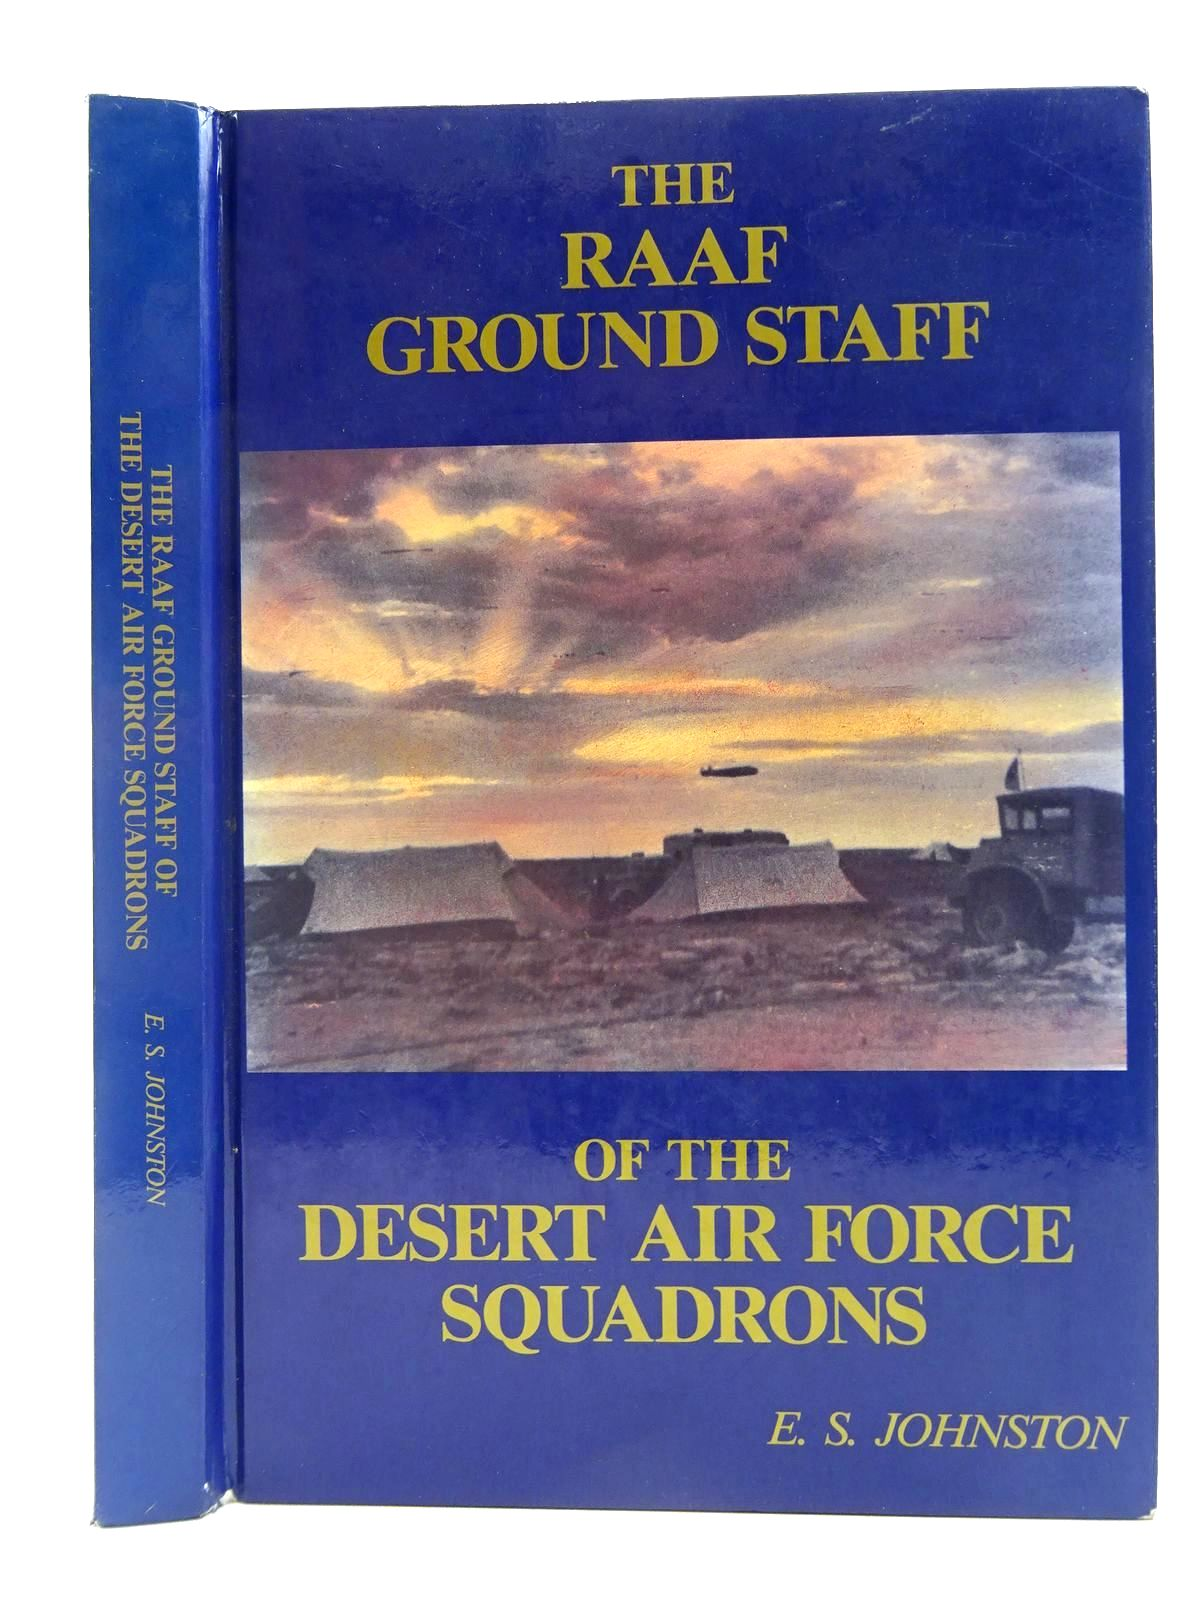 Photo of THE RAAF GROUND STAFF OF THE DESERT AIR FORCE SQUADRONS written by Johnston, E.S. published by E.S. Johnston (STOCK CODE: 2128594)  for sale by Stella & Rose's Books